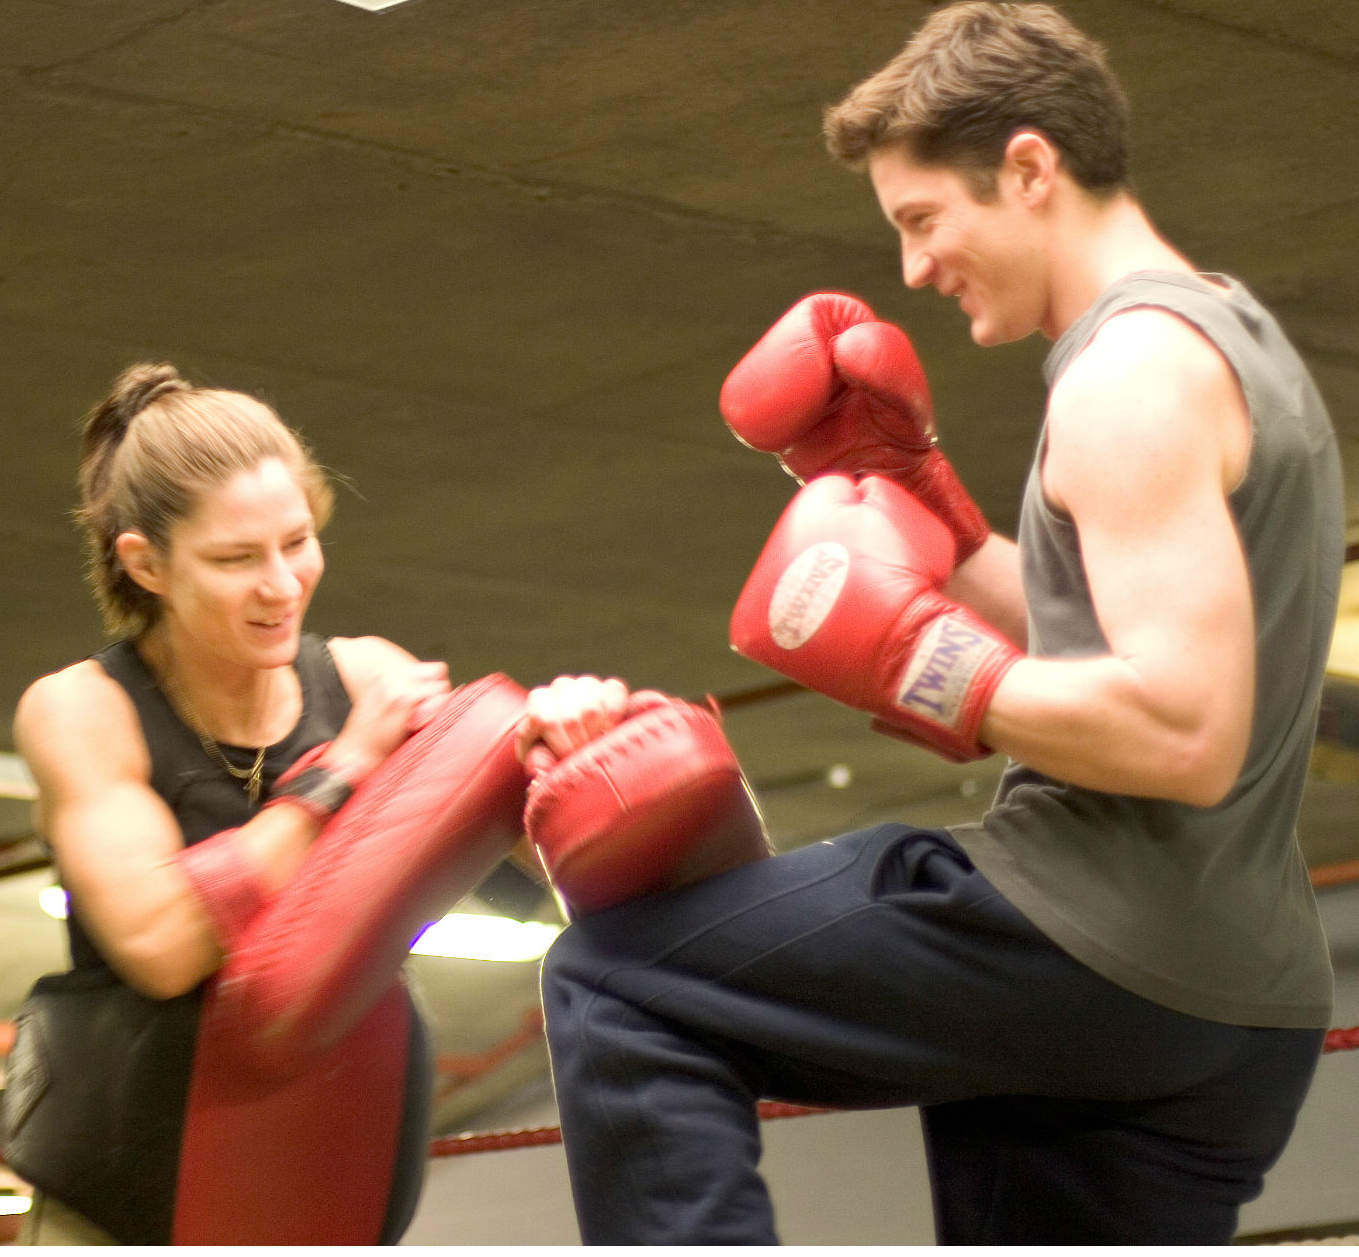 Kickboxing with Fiona Hayes - Personal trainer in North London